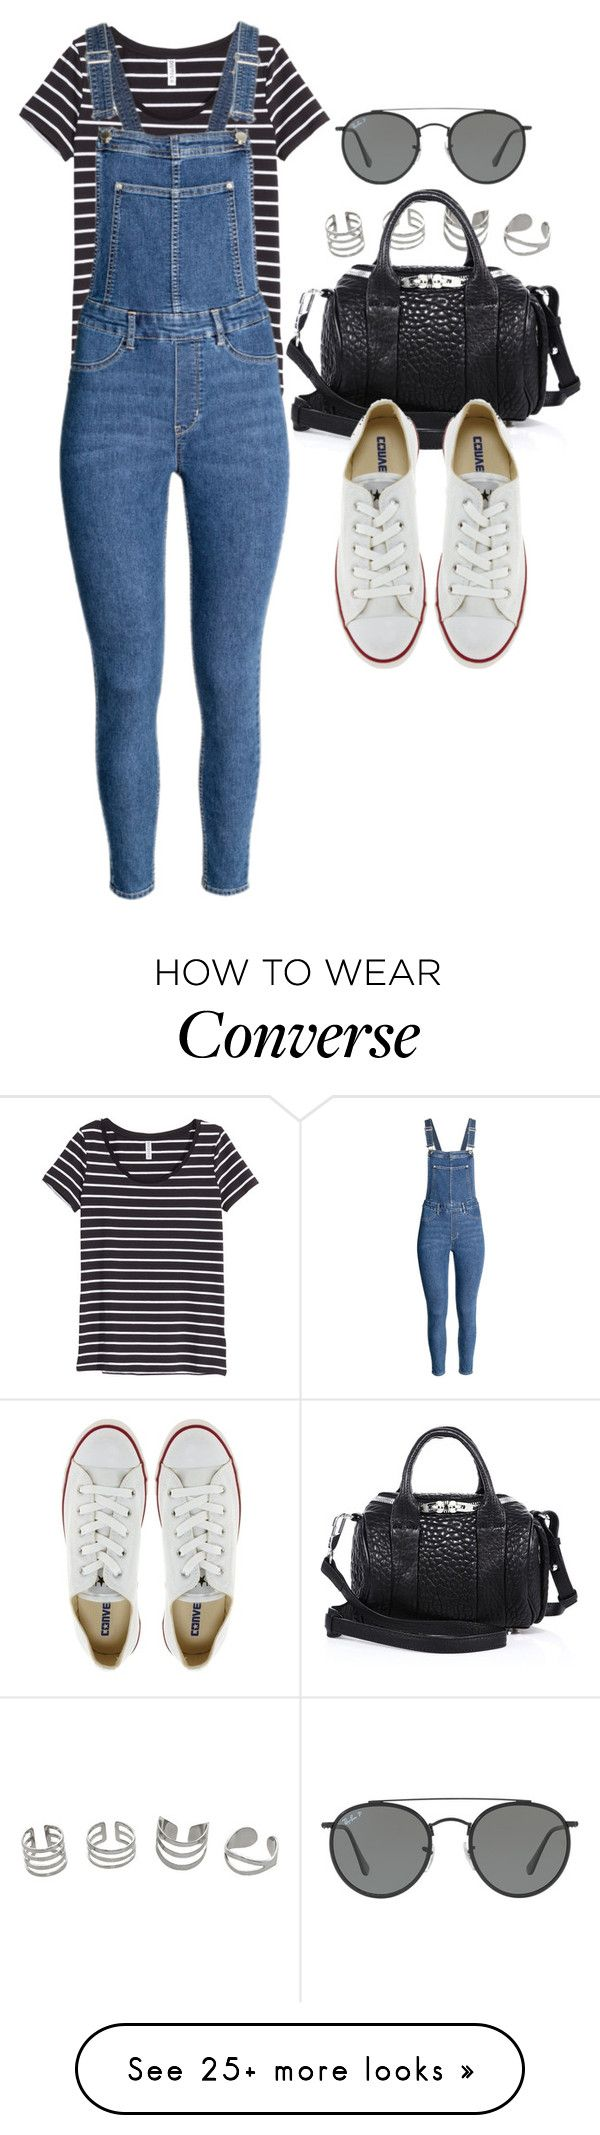 """Sin título #12127"" by vany-alvarado on Polyvore featuring H&M, Alexander Wang, Converse and Ray-Ban"